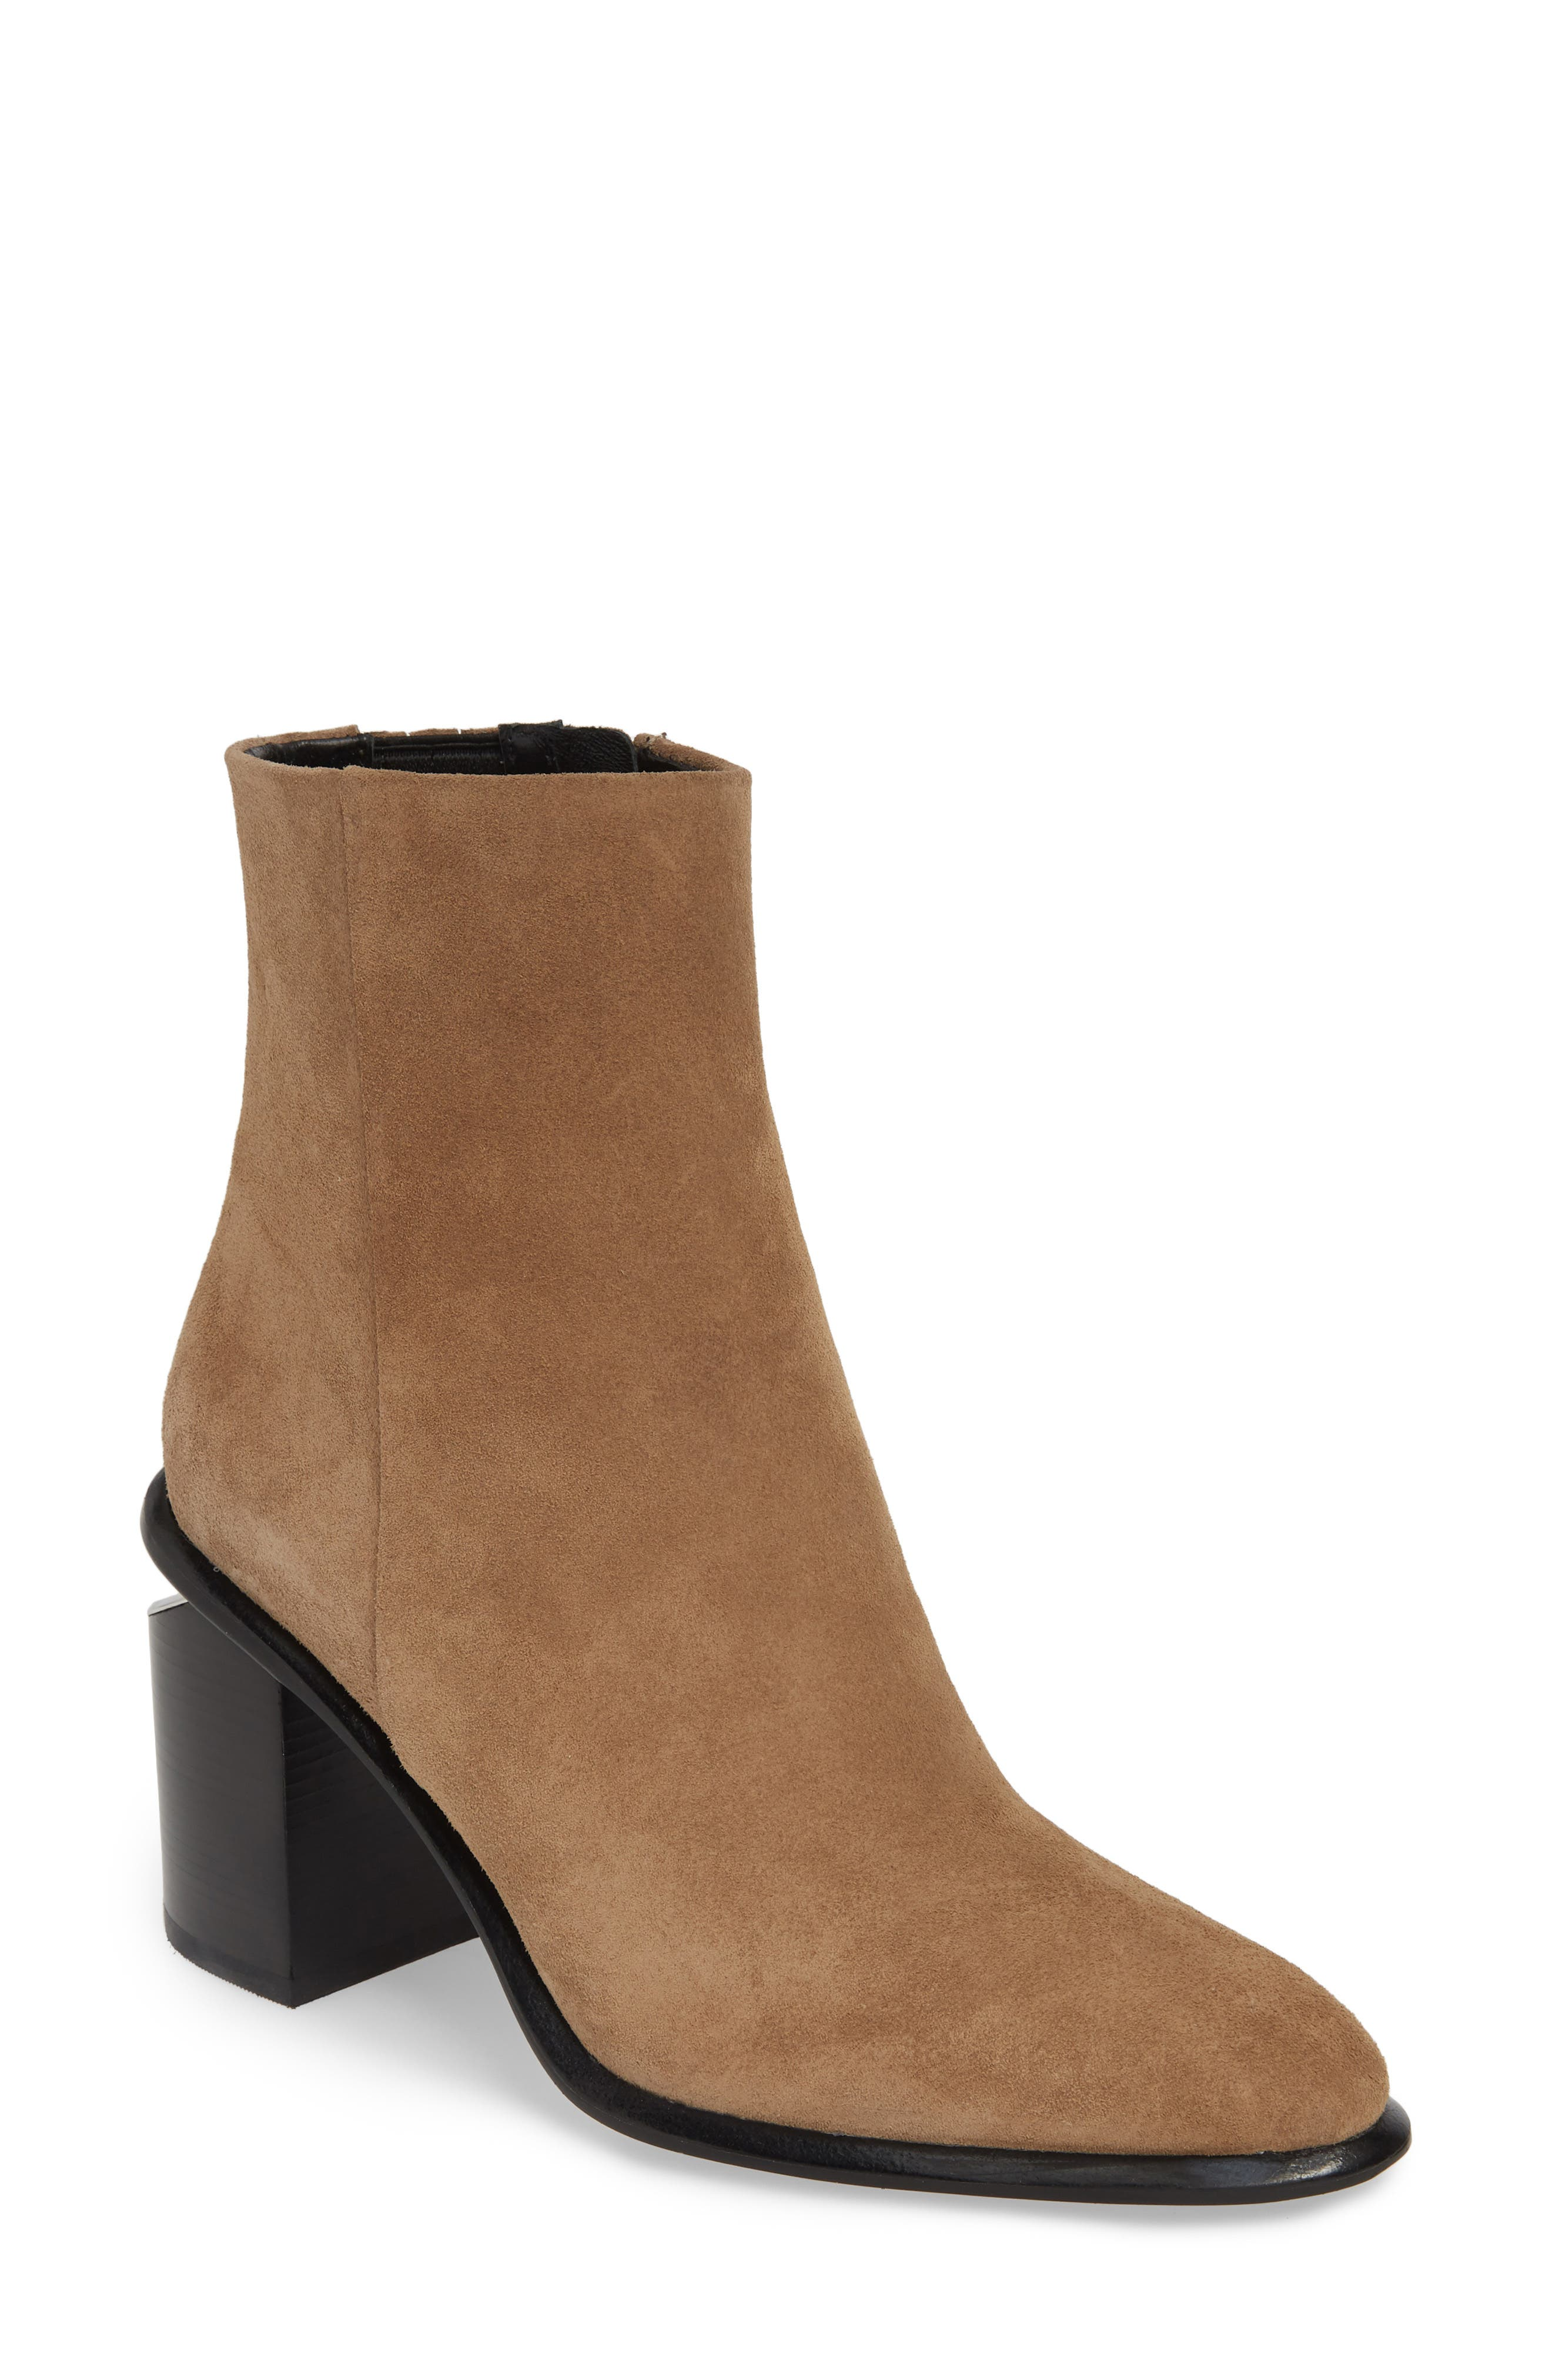 ALEXANDER WANG, Anna Mid Bootie, Main thumbnail 1, color, SAND SUEDE